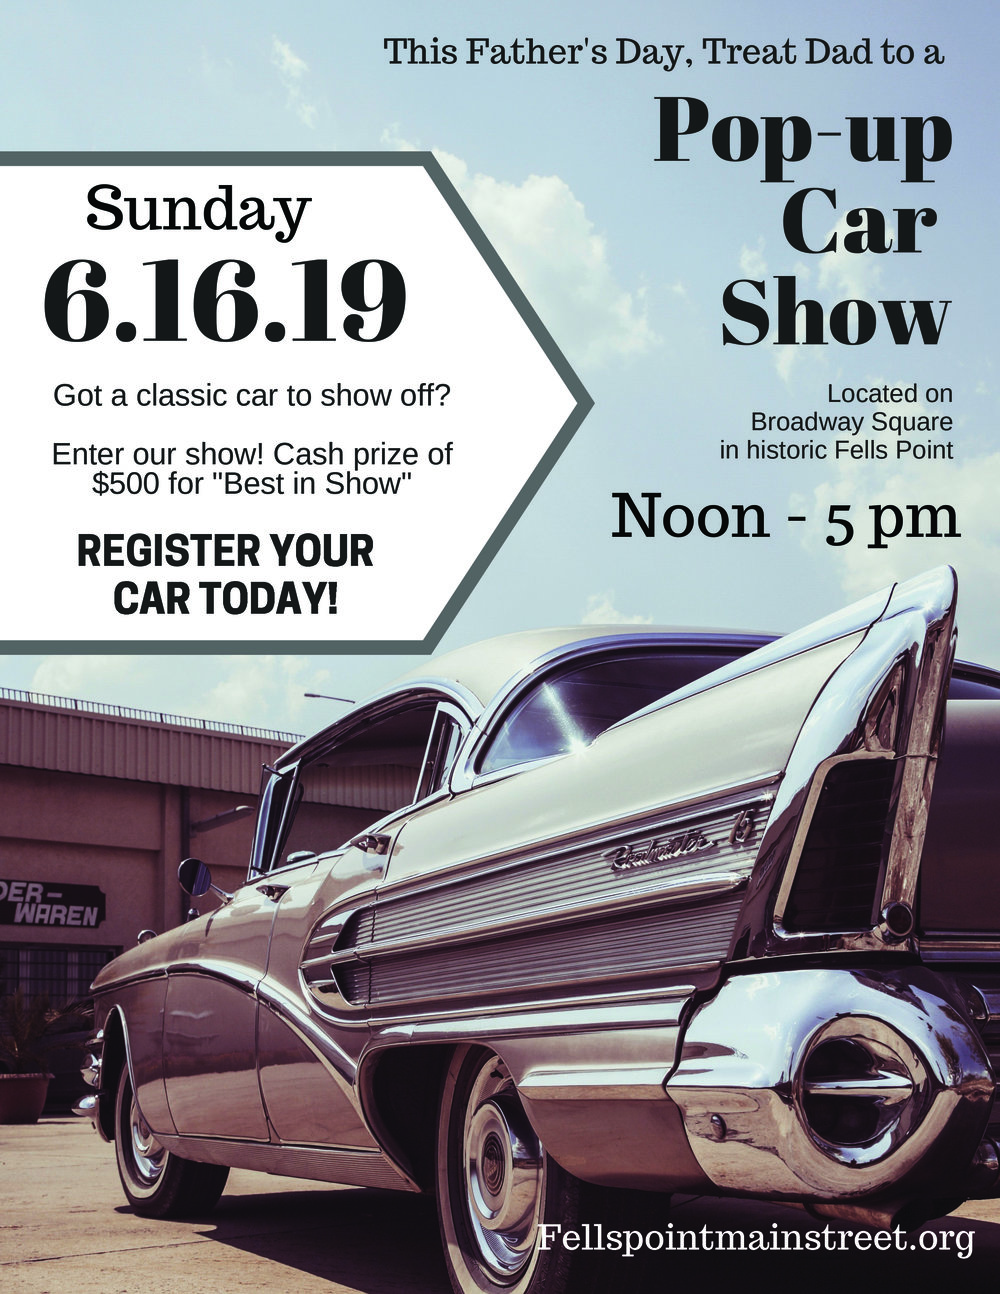 Father's Day Pop-up Car Show - Fells Point 6-16-19.jpg